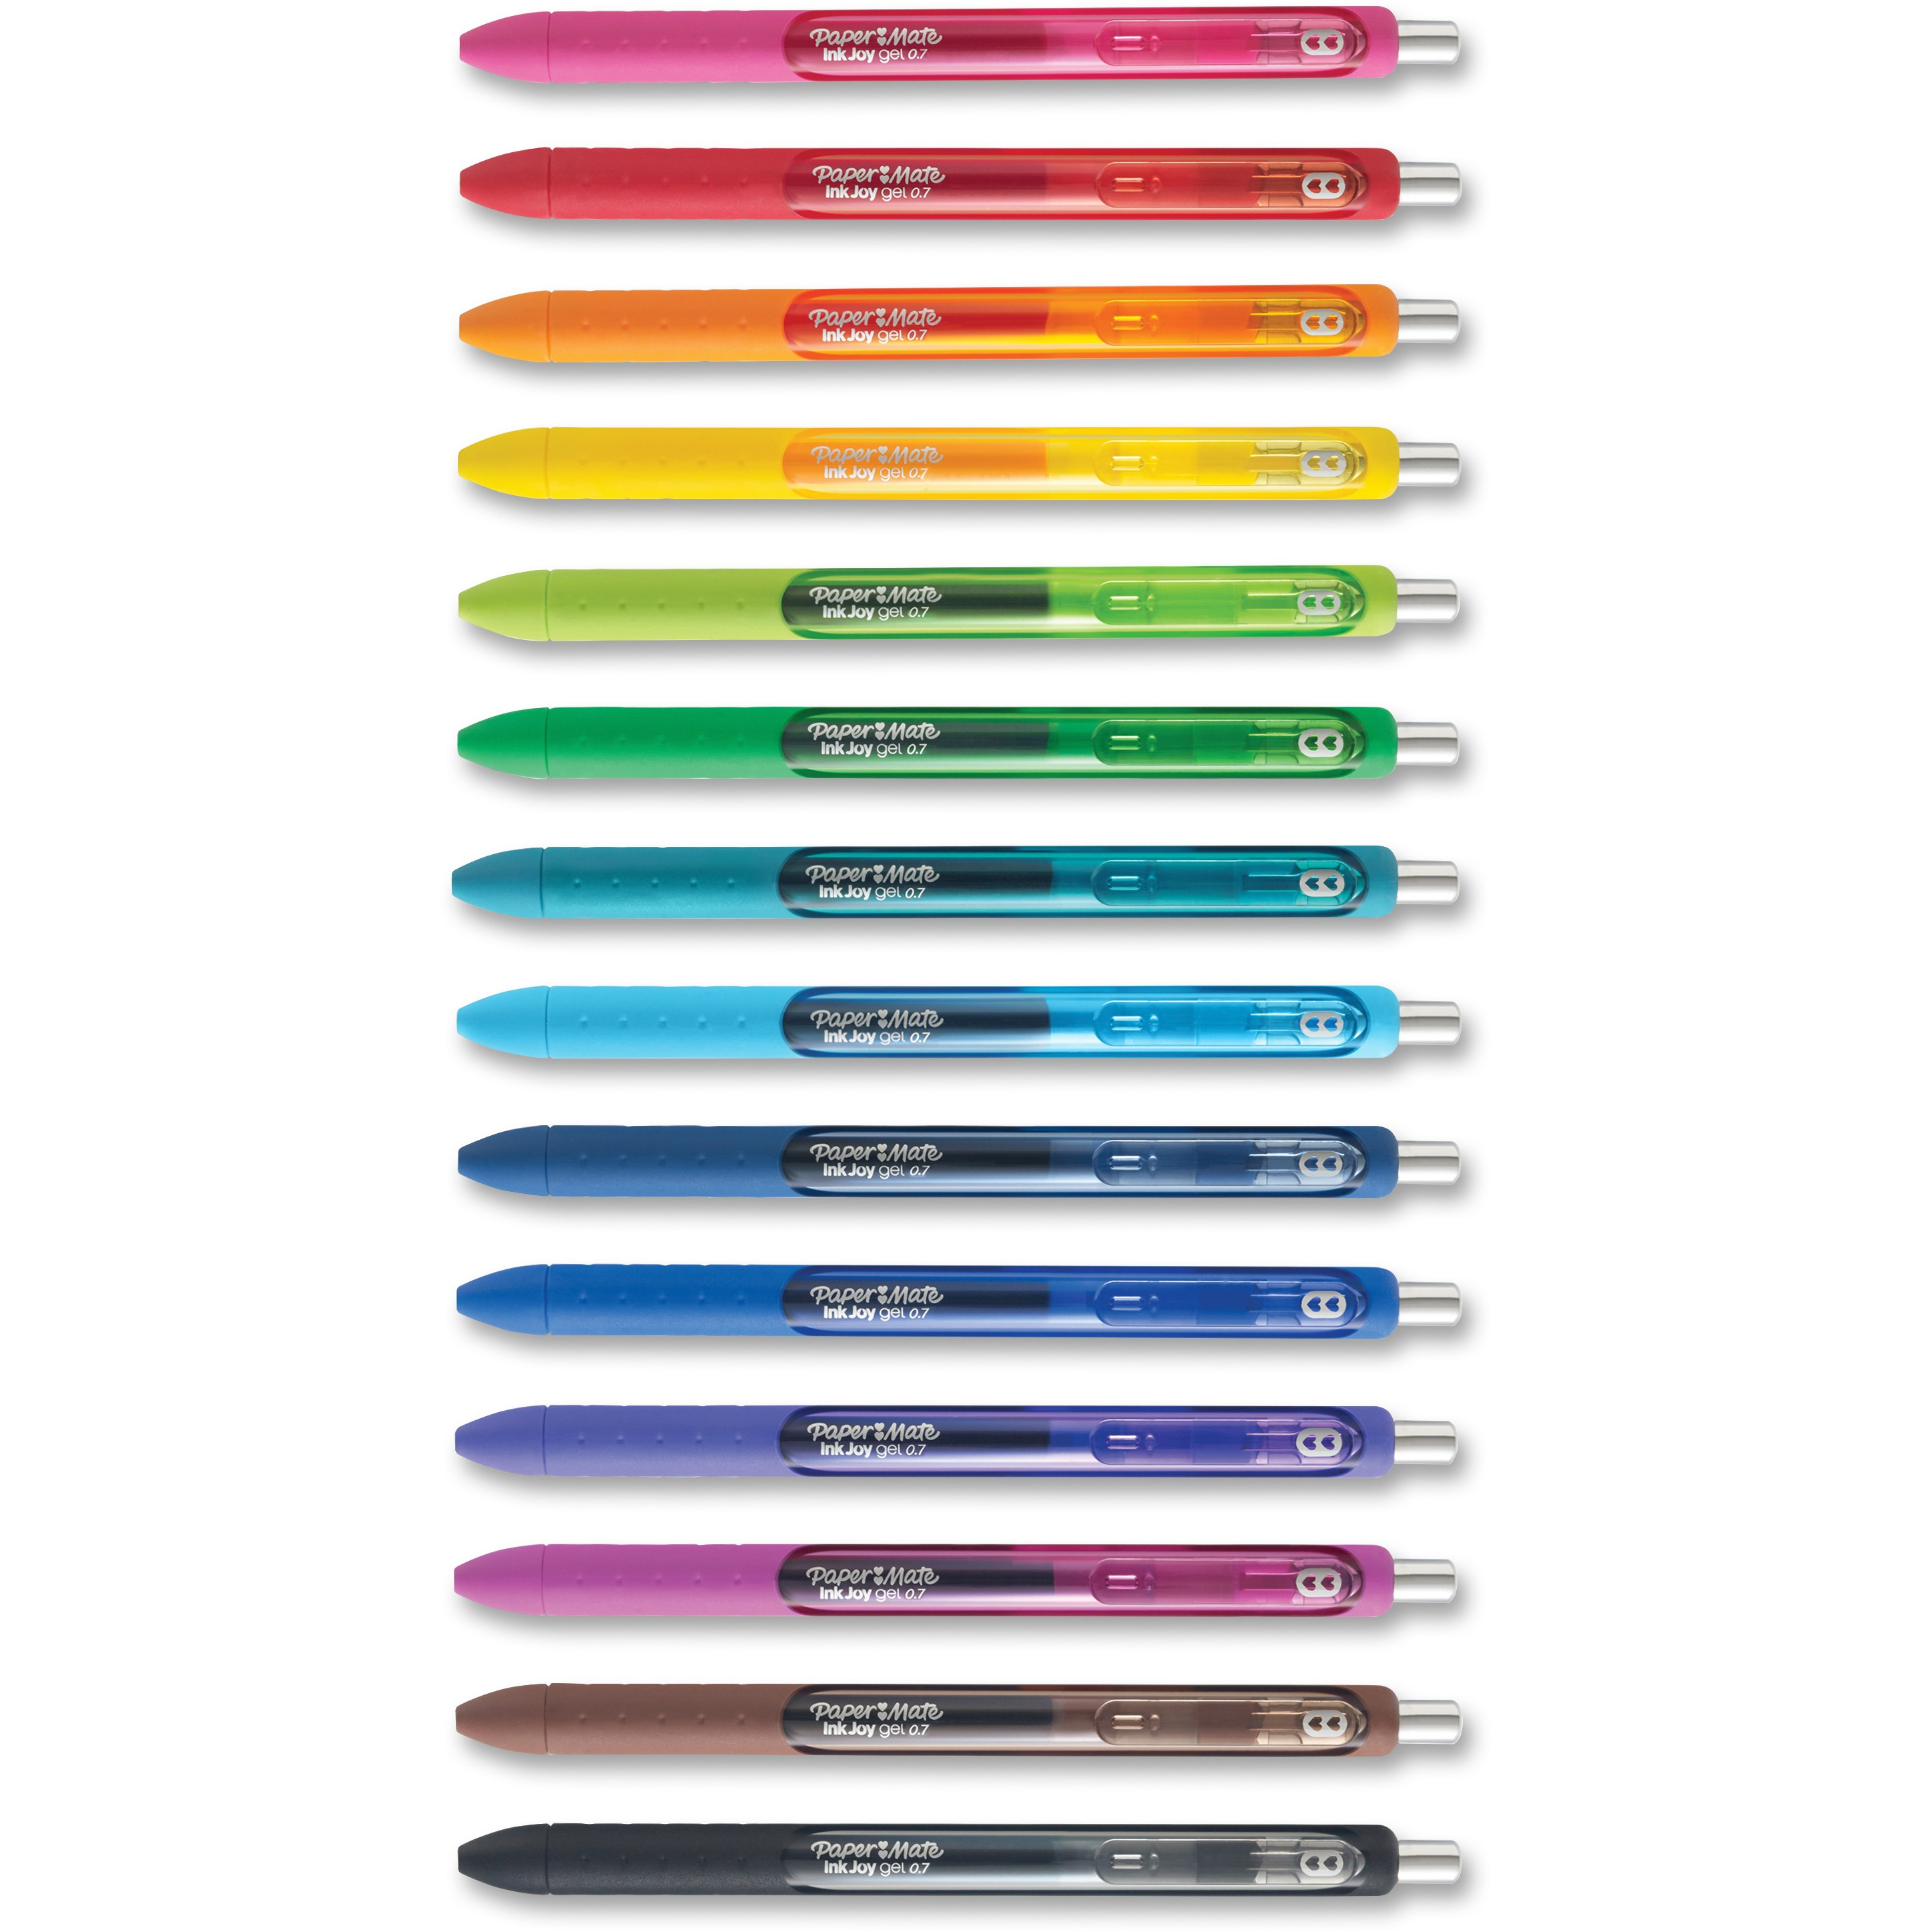 Paper Mate InkJoy Gel Pens, Medium Point, Assorted, 14 Pack by Newell Rubbermaid, Inc